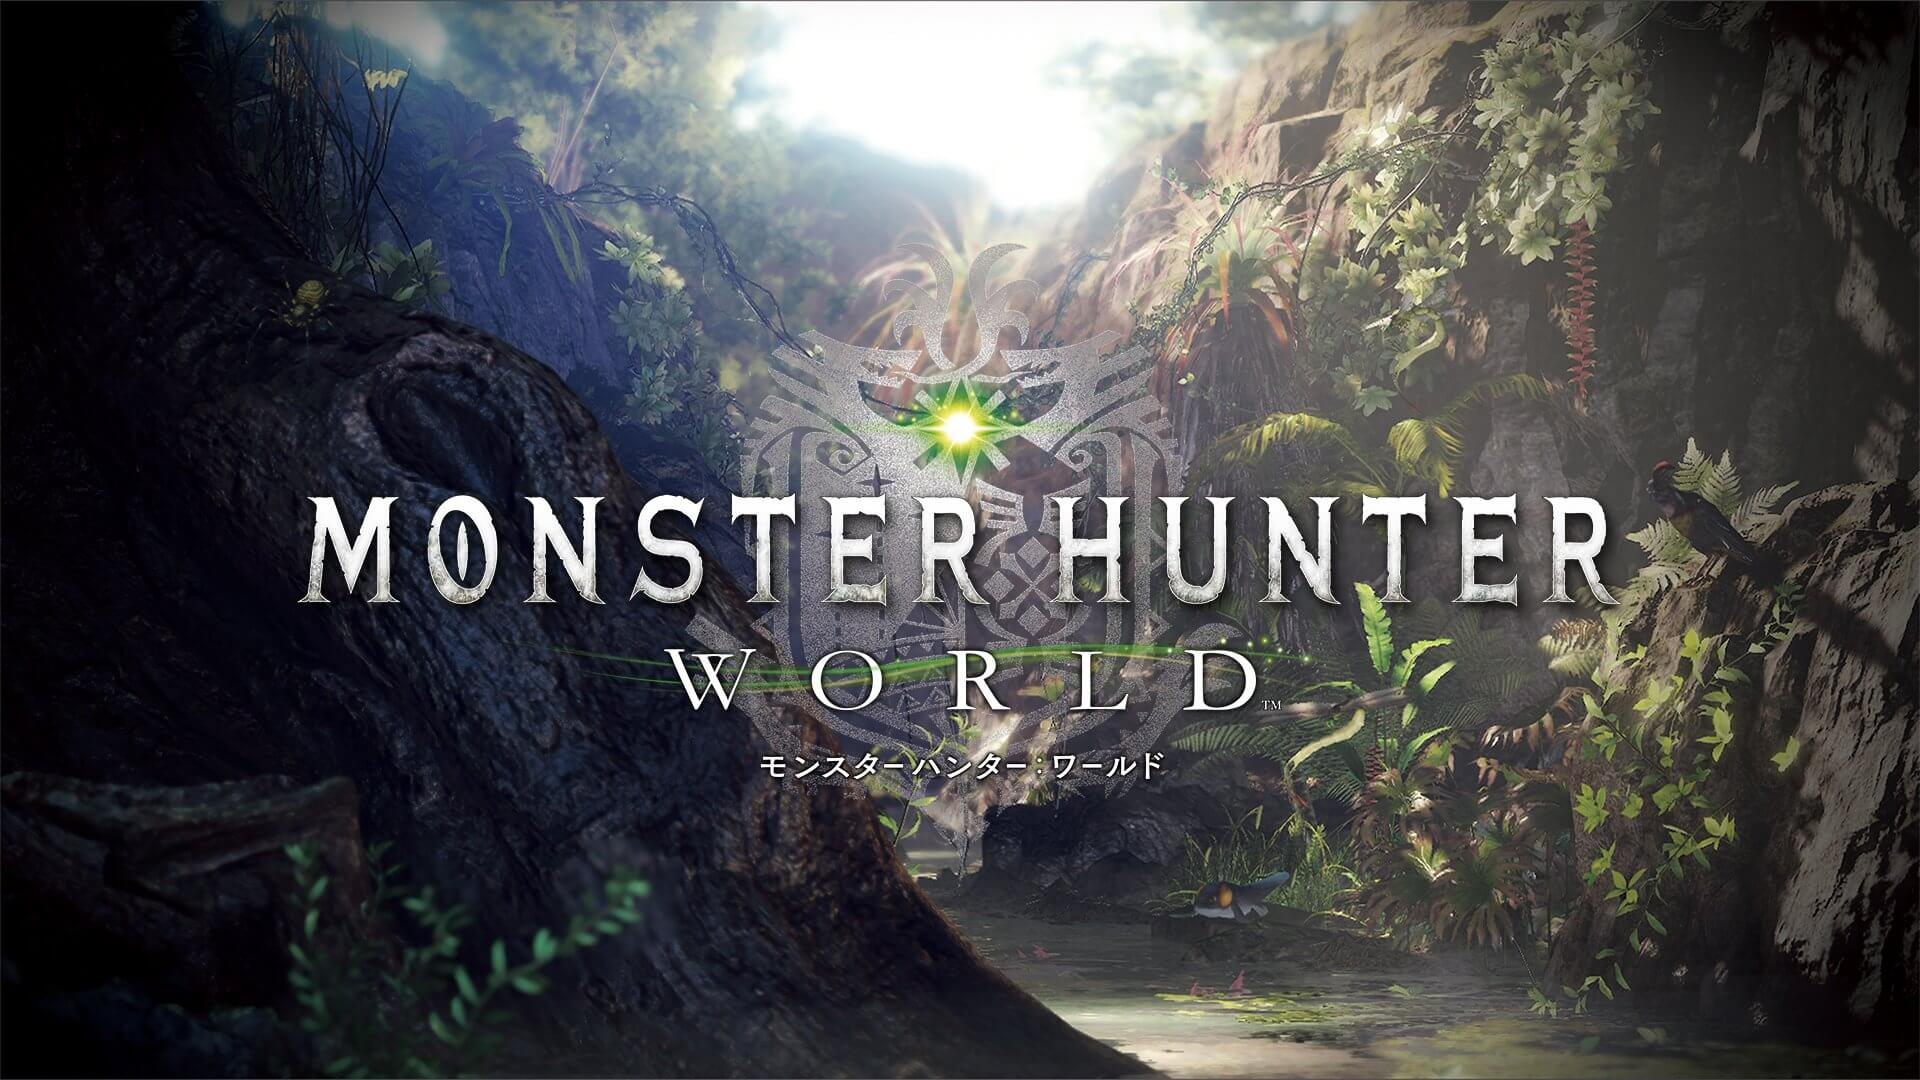 """Monster Hunter: World"" Becomes Capcom's Best-Selling Game - Capcom Ships 7.5 Million Copies after Two Months"